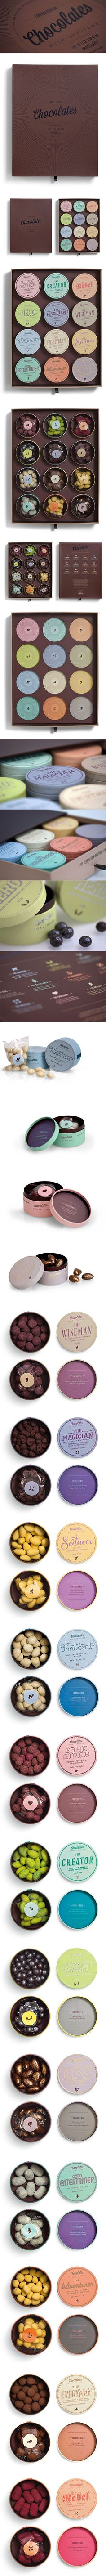 Life is like a box of chocolates  Chocolates With Attitude - The Dieline - http://www.thedieline.com/blog/2013/1/7/chocolates-with-attitude.html #packaging via @Matt Nickles Valk Chuah Dieline